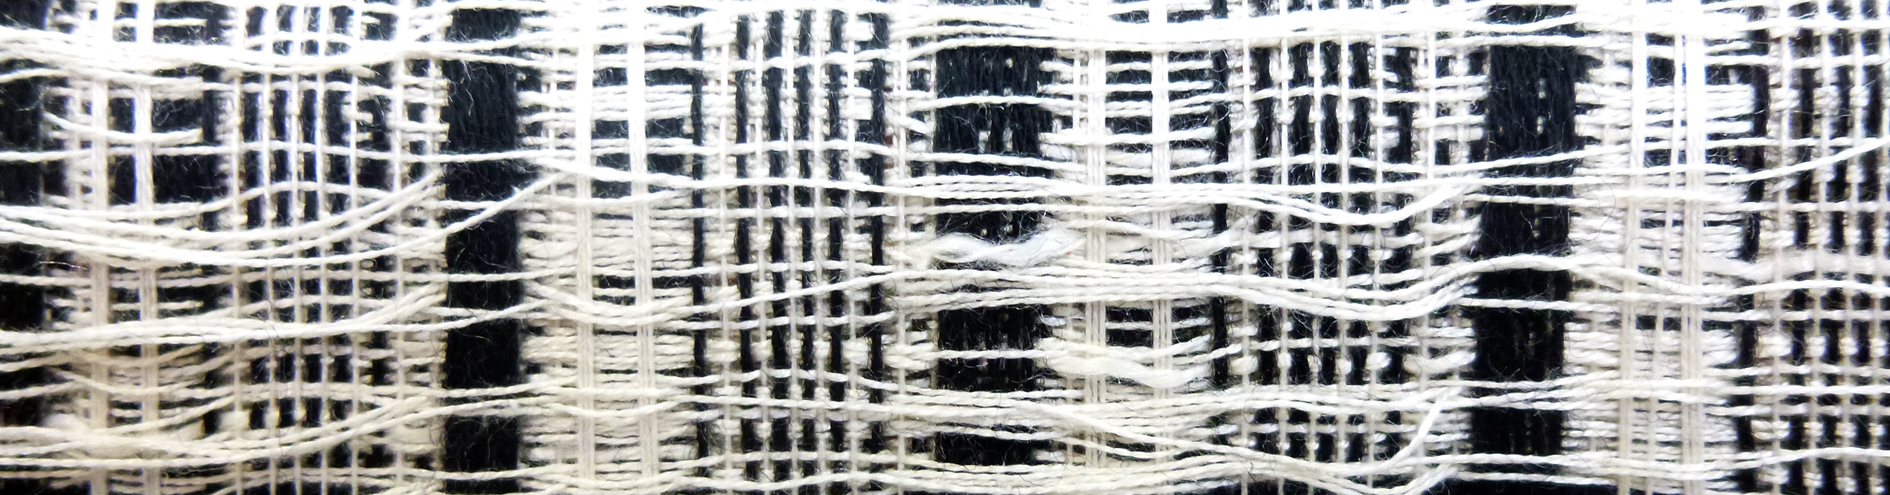 Dobby woven silk, wool and cashmere exploiting loose weave structures on a sound structural  base